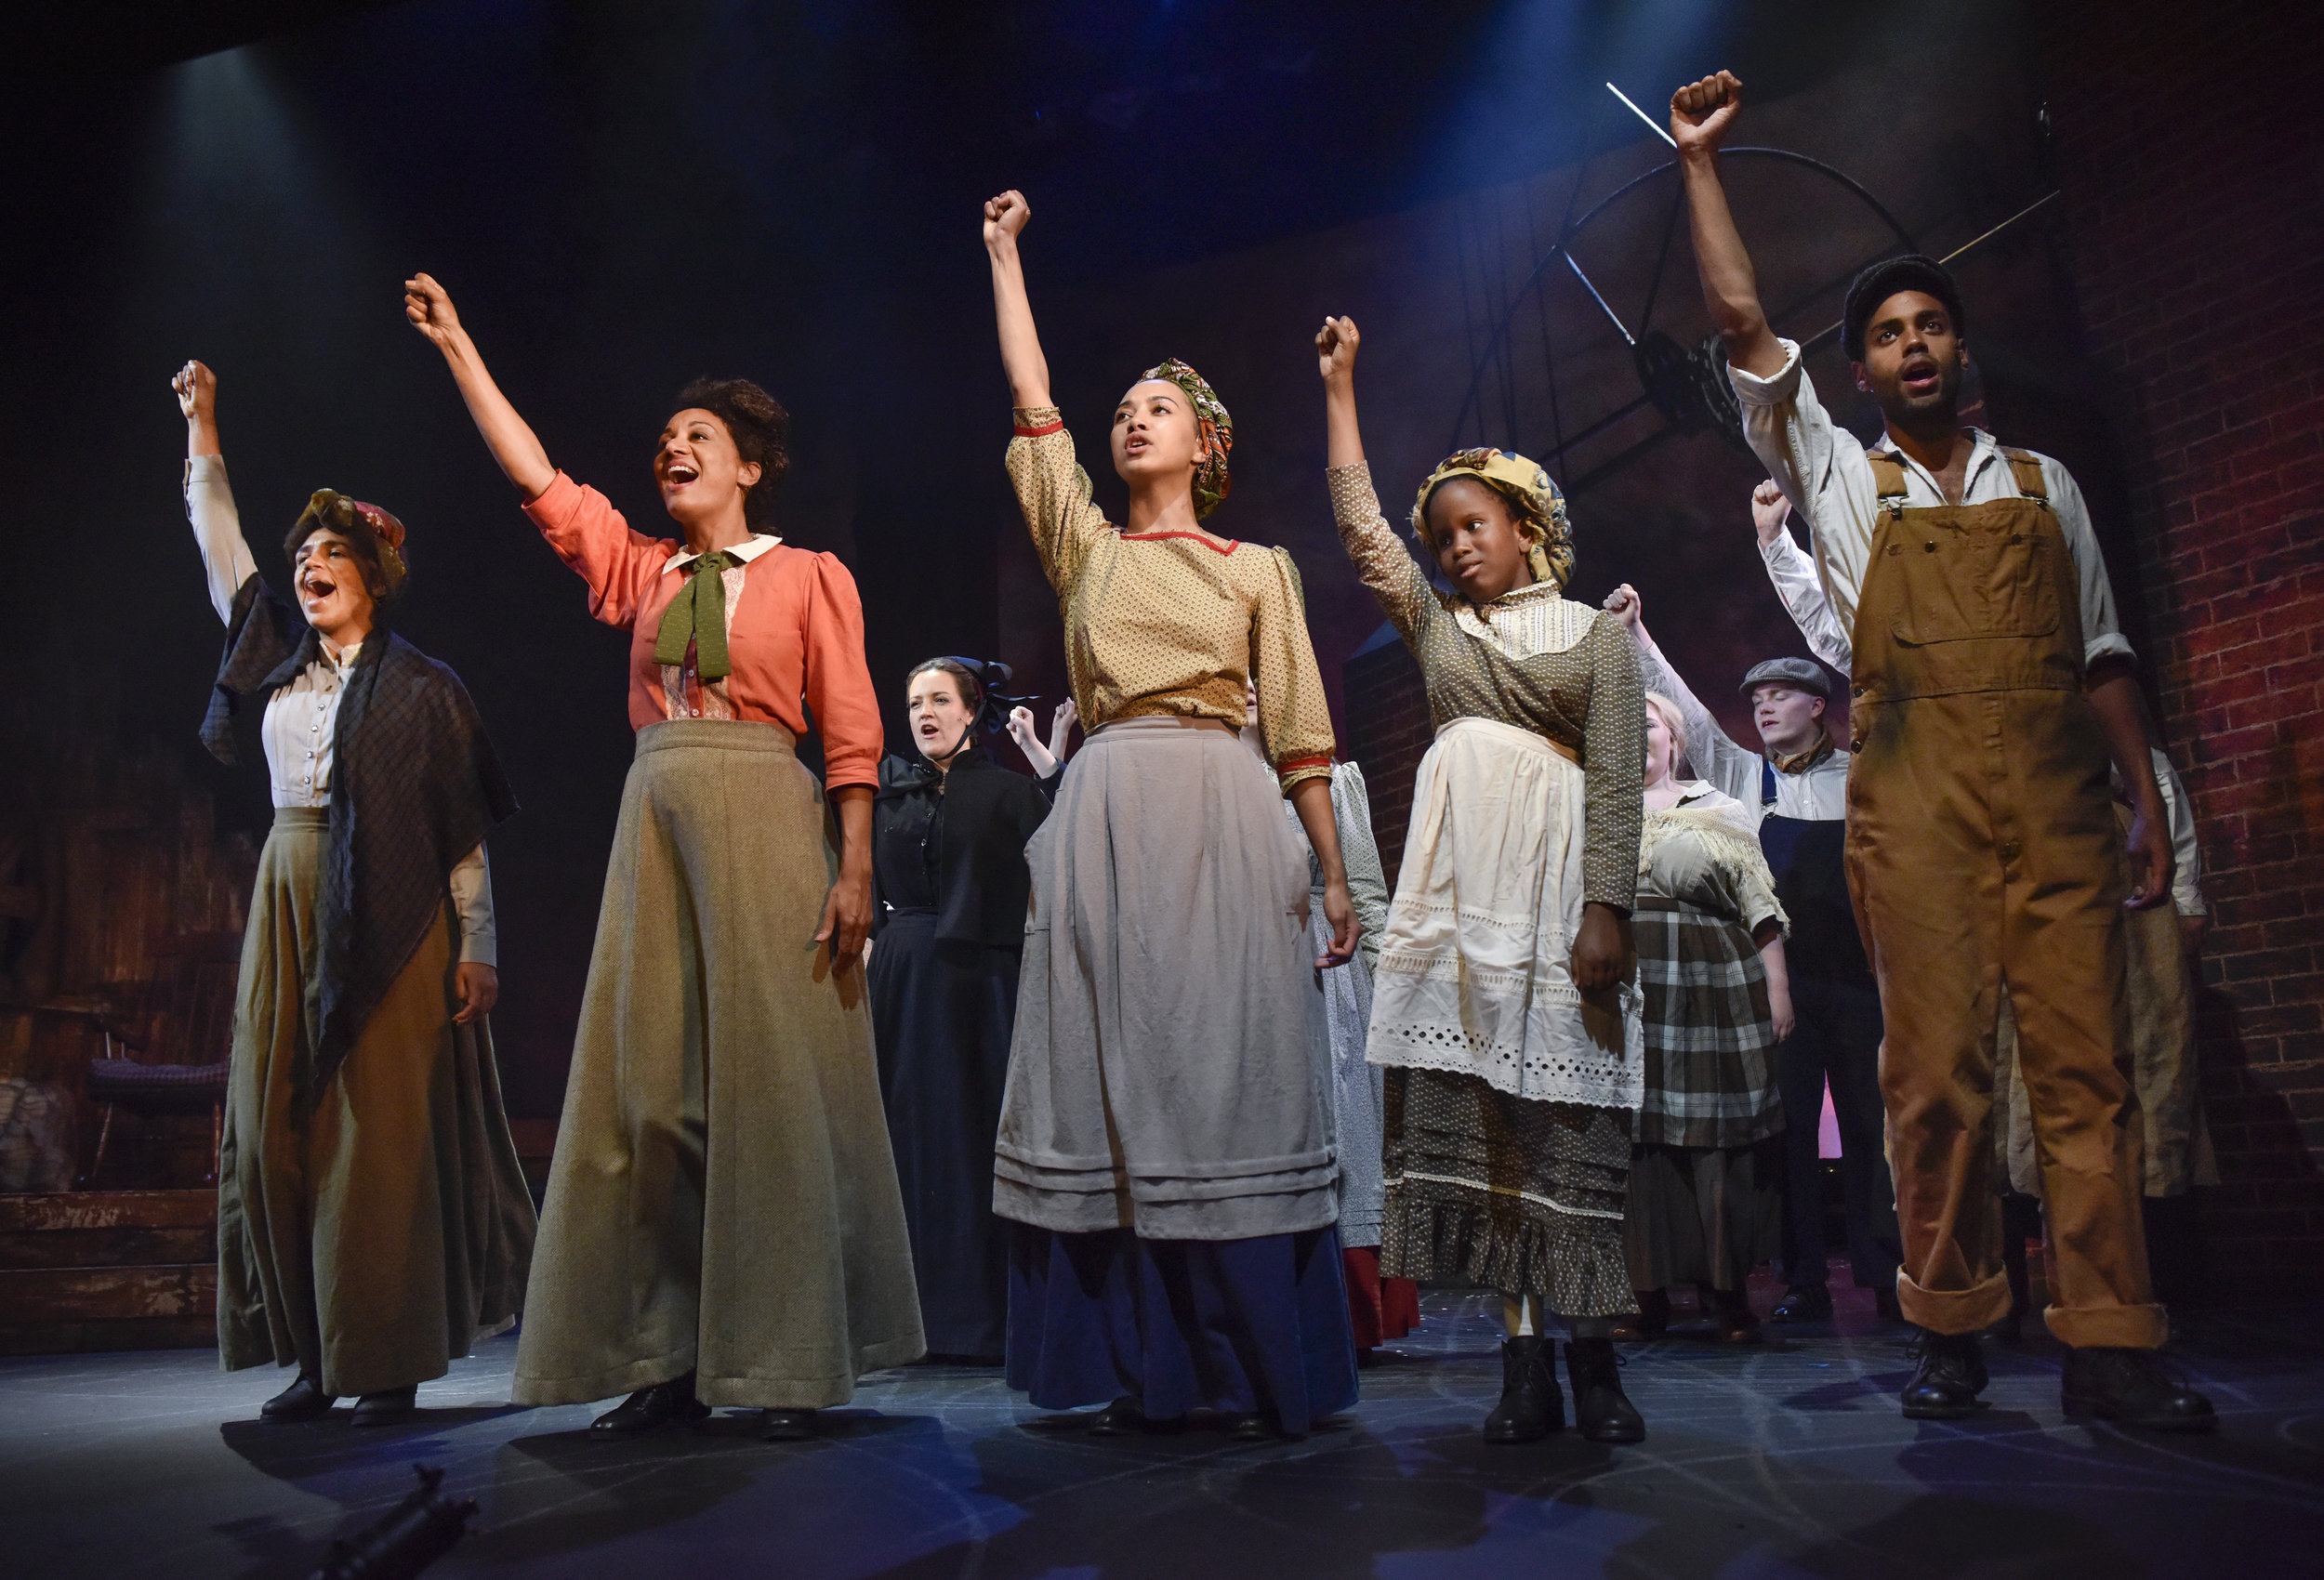 Abbie Williams ( Sophie Mercell ), Elizabth Gurley Flynn ( Tupele Dorgu ), Lucy-Rose Atkins ( Emma Naomi ), Ruth Atkins and Cal Jackson ( Oliver Wellington )in '  BREAD & ROSES  ' (22 Jun - 7 Jul 2018) at  Oldham Coliseum Theatre     Photo by  Joel Chester Fildes , courtesy of Oldham Coliseum Theatre